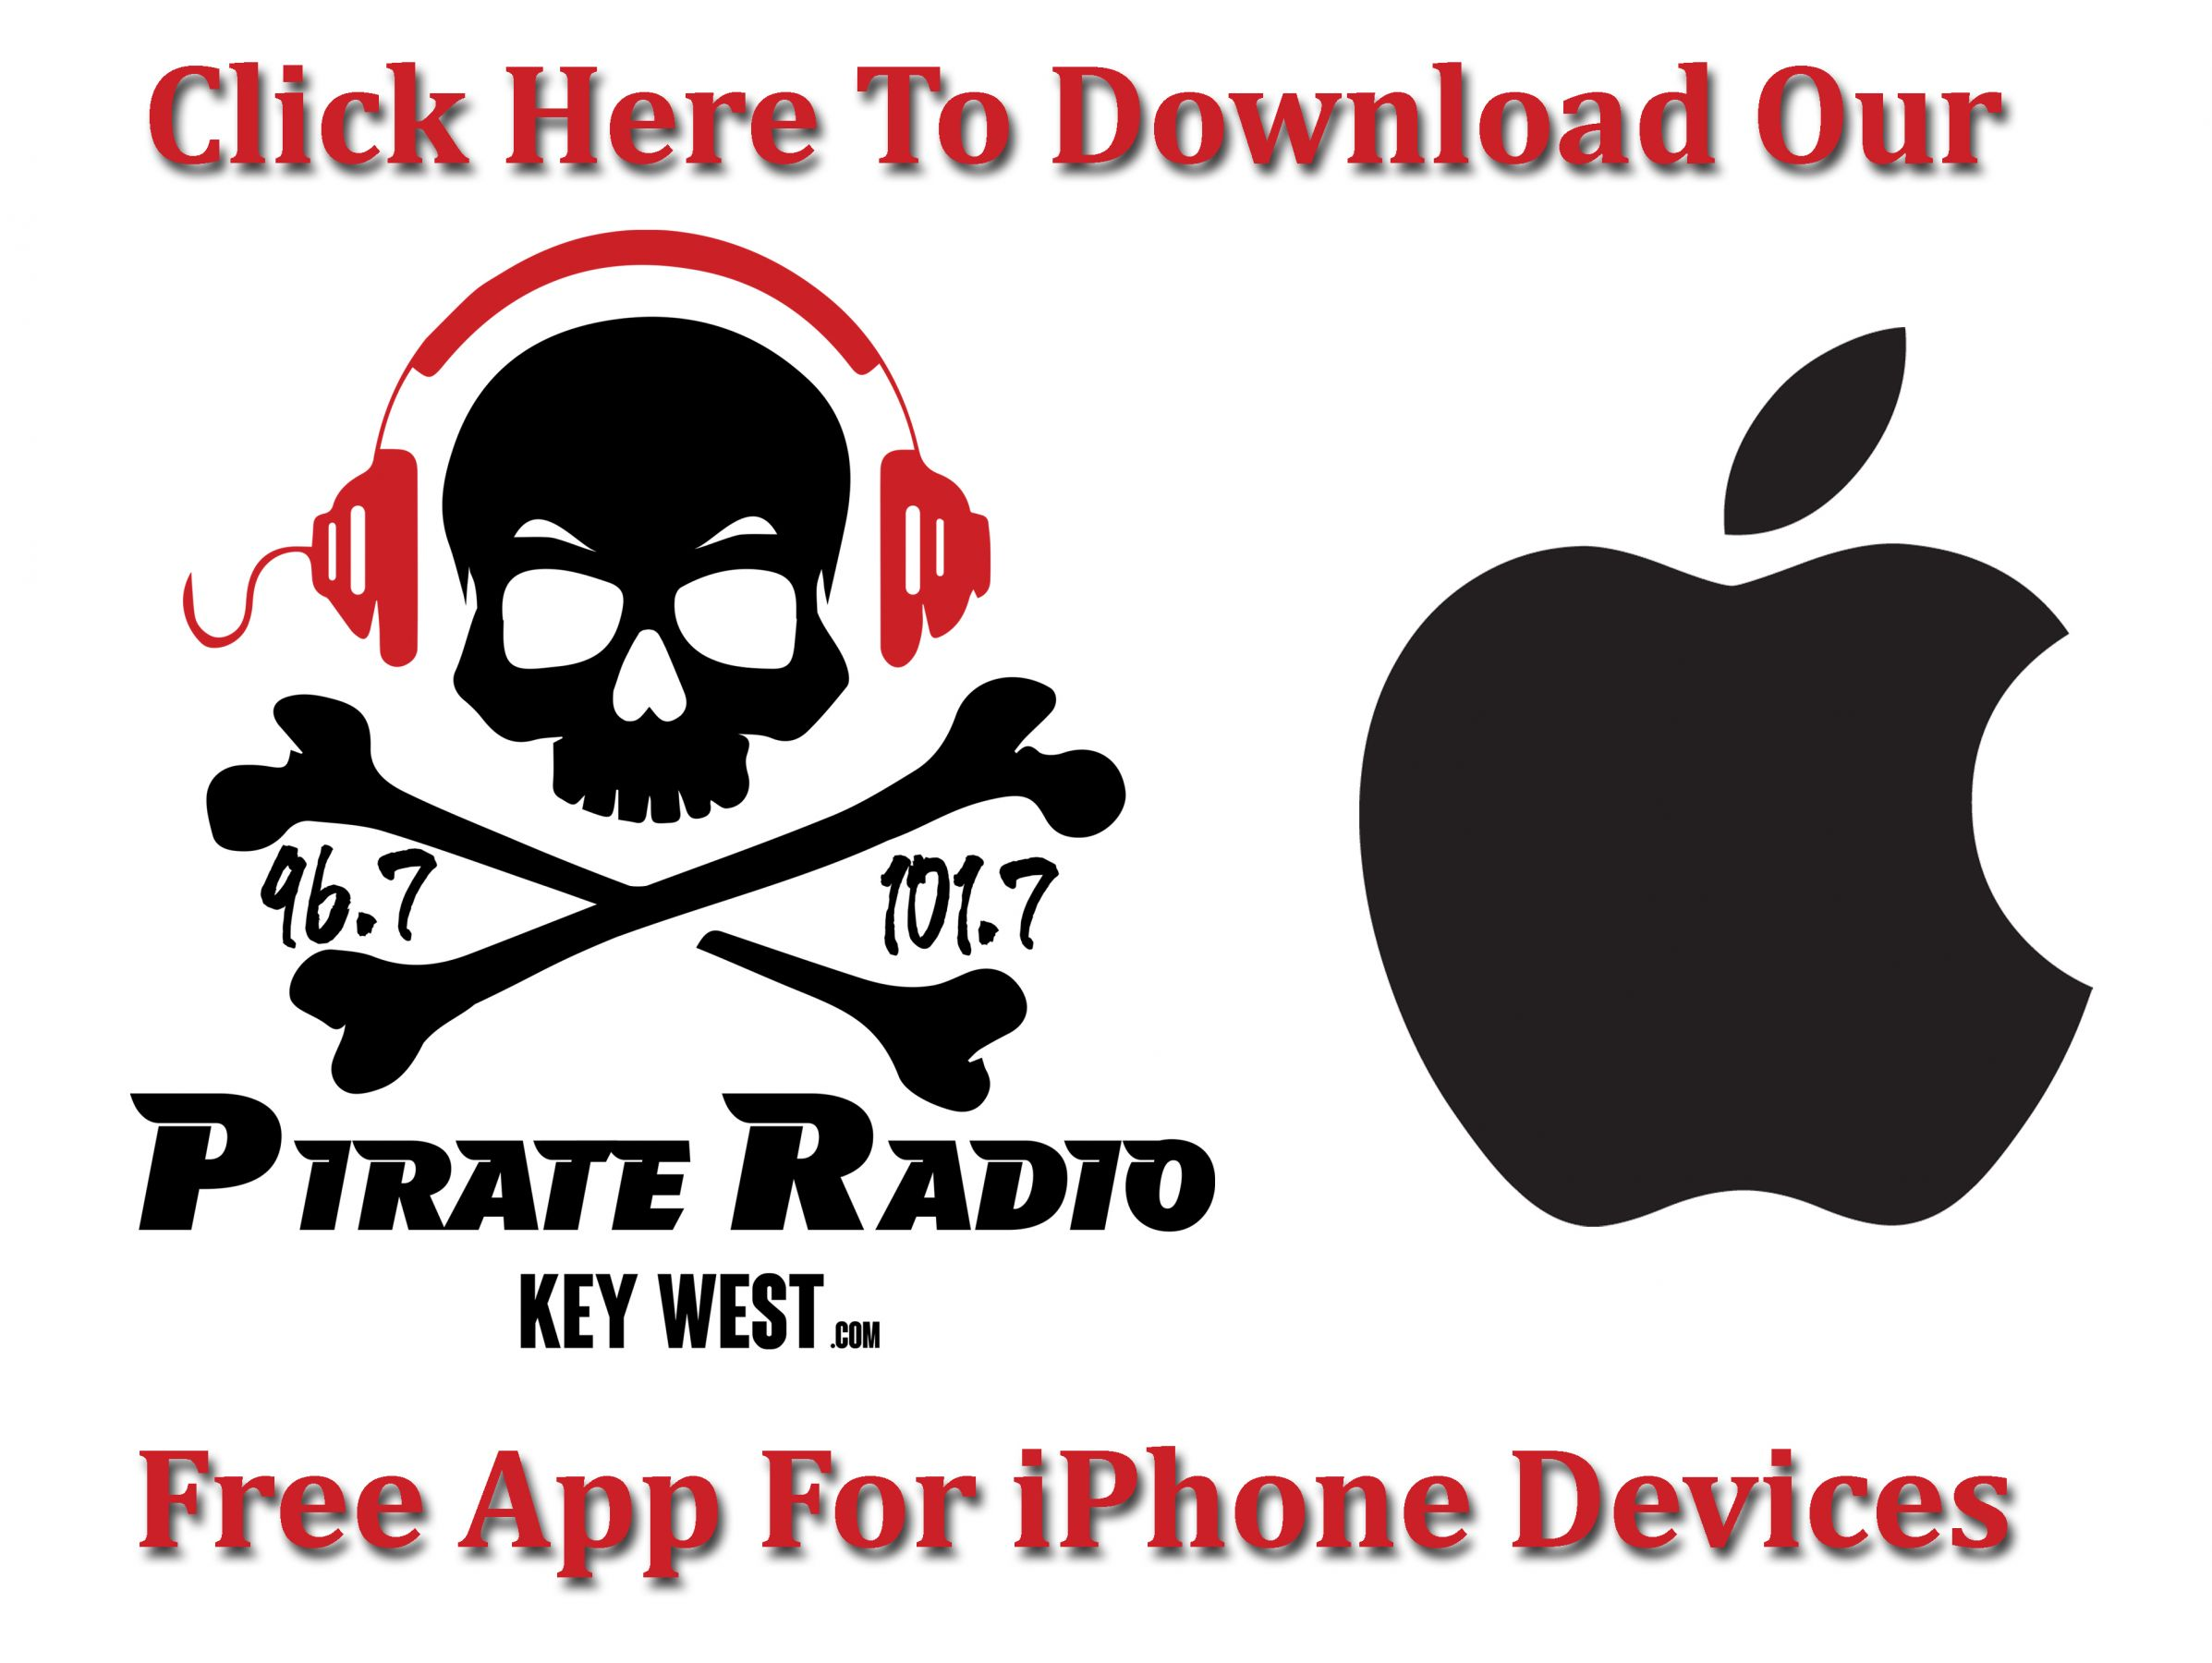 Pirate Radio Free Apps - Pirate Radio Key West